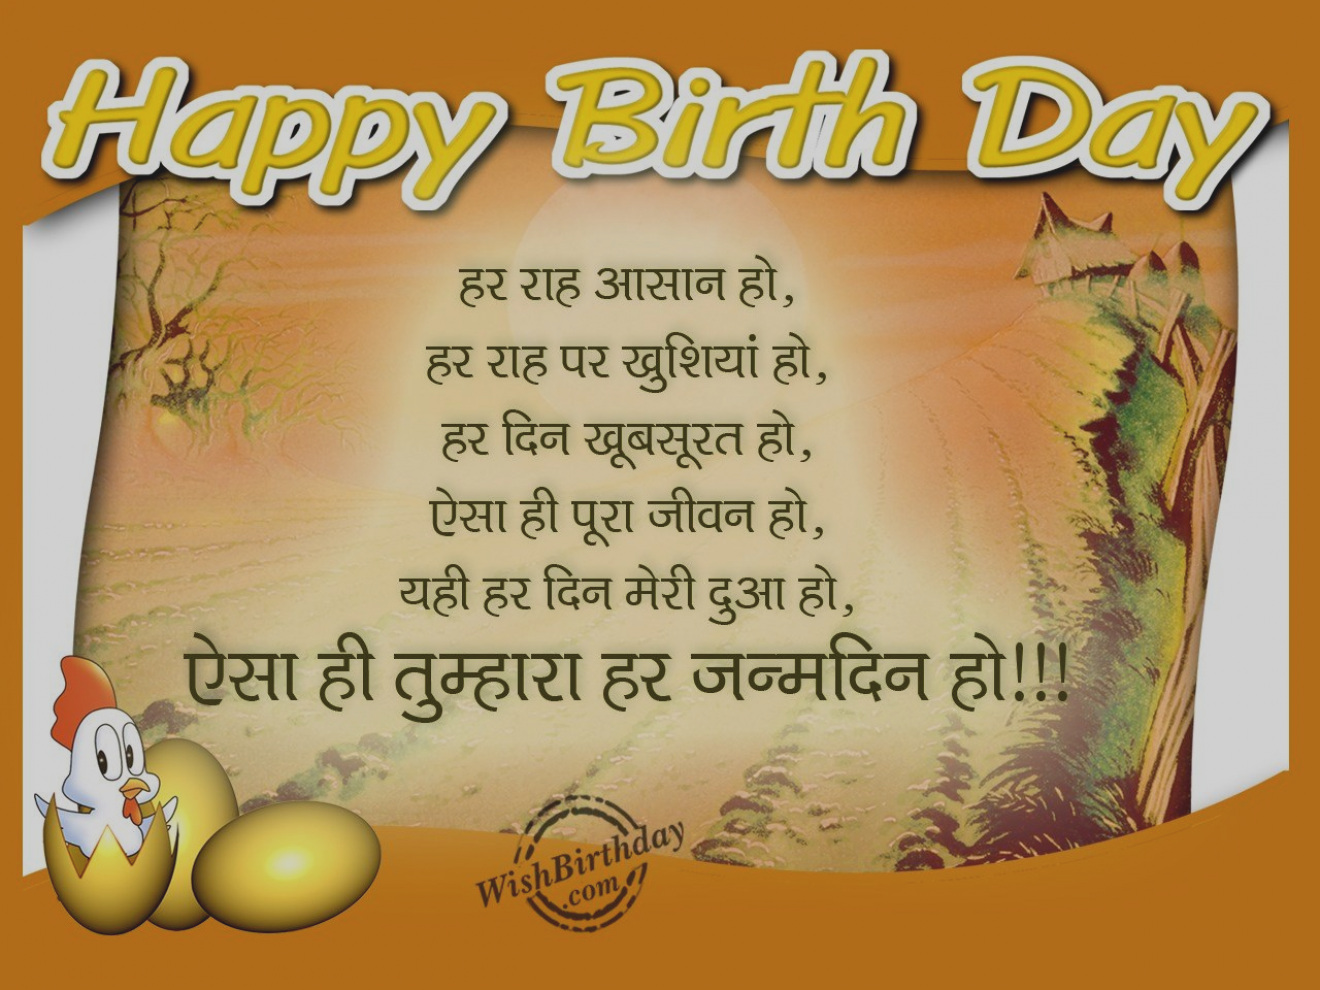 hindi greeting cards birthday ; images-of-birthday-wishes-with-greeting-cards-hindi-greetings-pictures-home